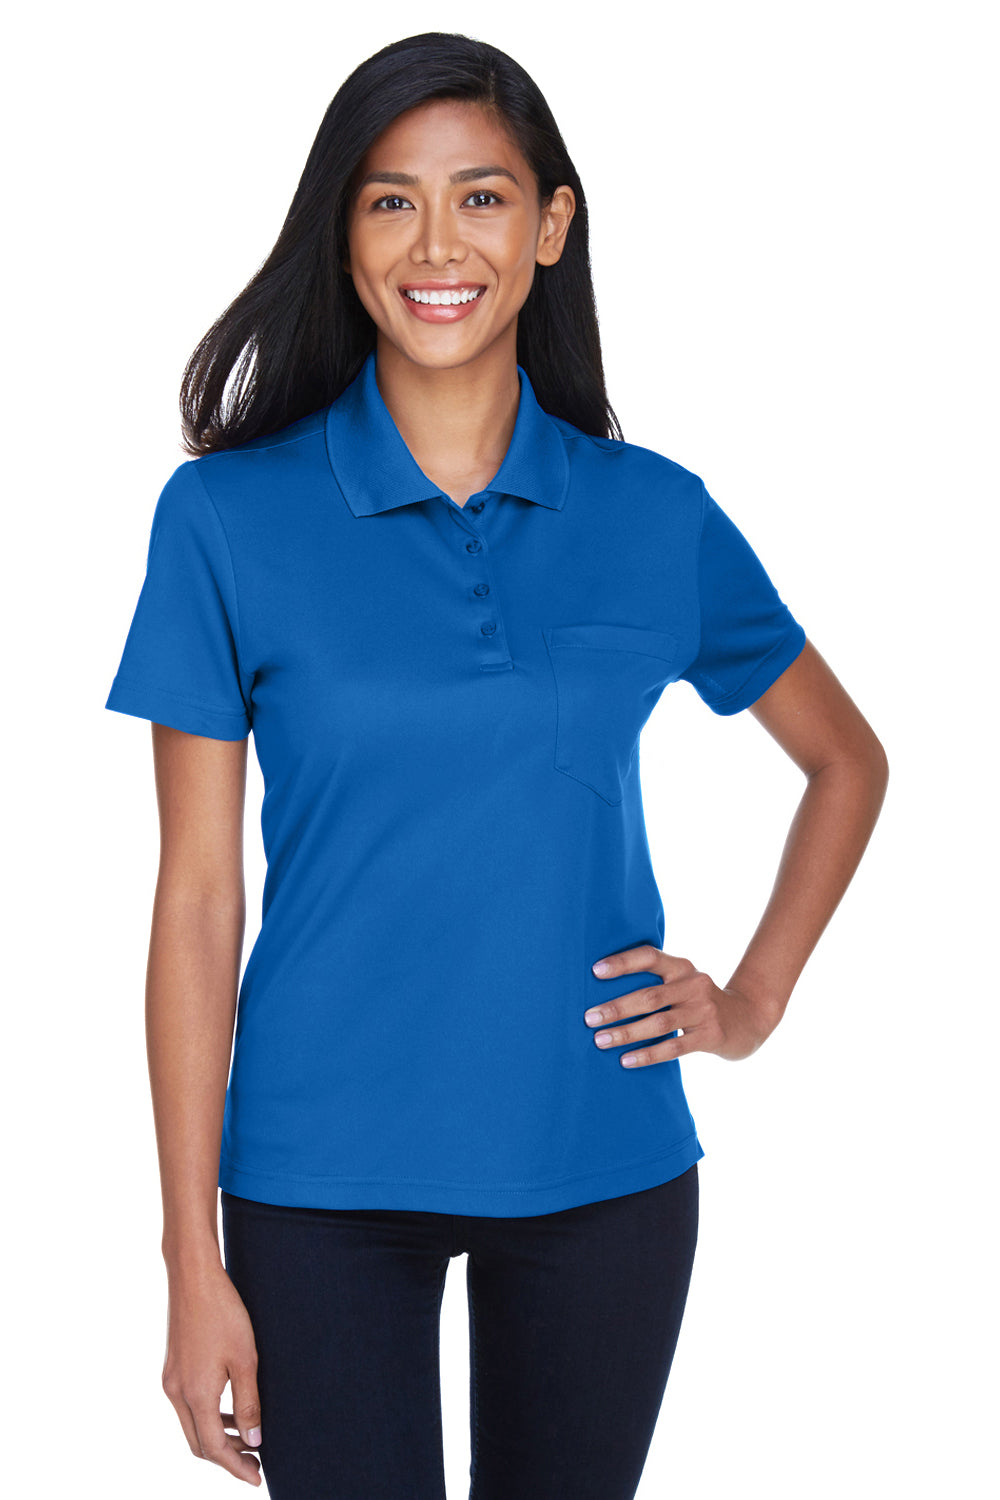 Core 365 78181P Womens Origin Performance Moisture Wicking Short Sleeve Polo Shirt w/ Pocket Royal Blue Front